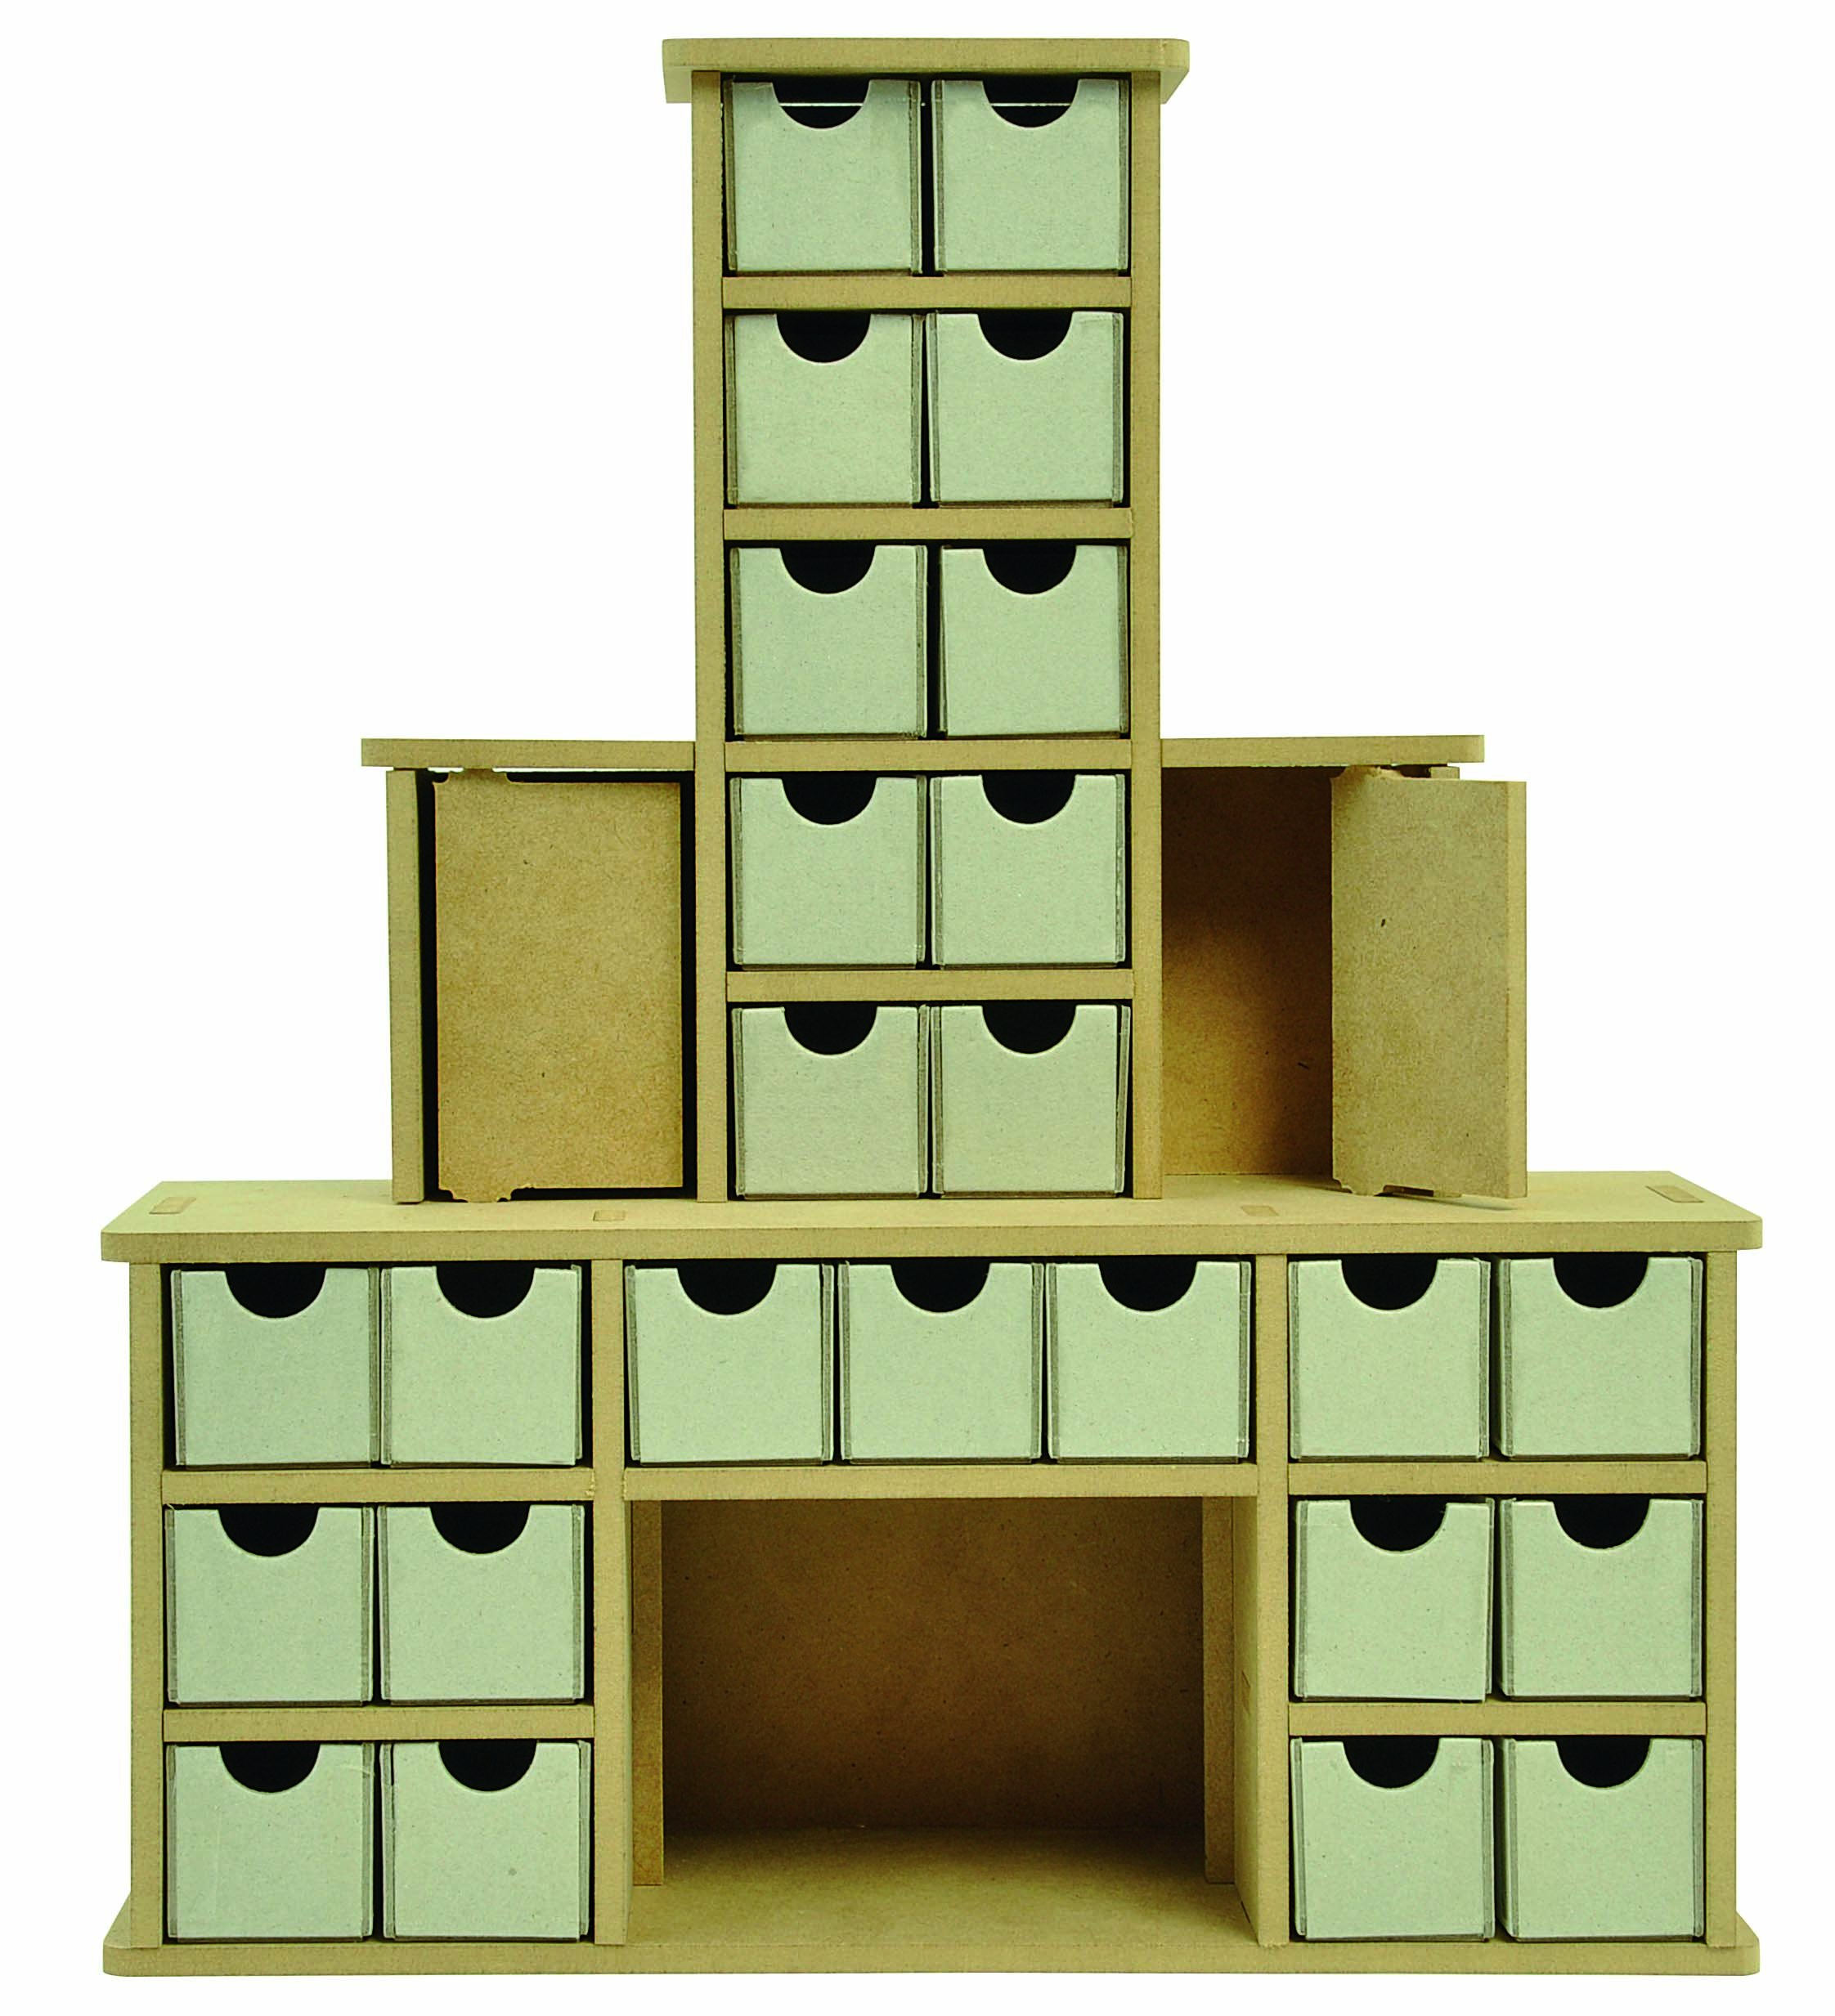 Kaisercraft SB2270 Beyond The Page MDF Chimney Advent Calendar, 13.5 by 4 by 15.5-Inch by Kaisercraft